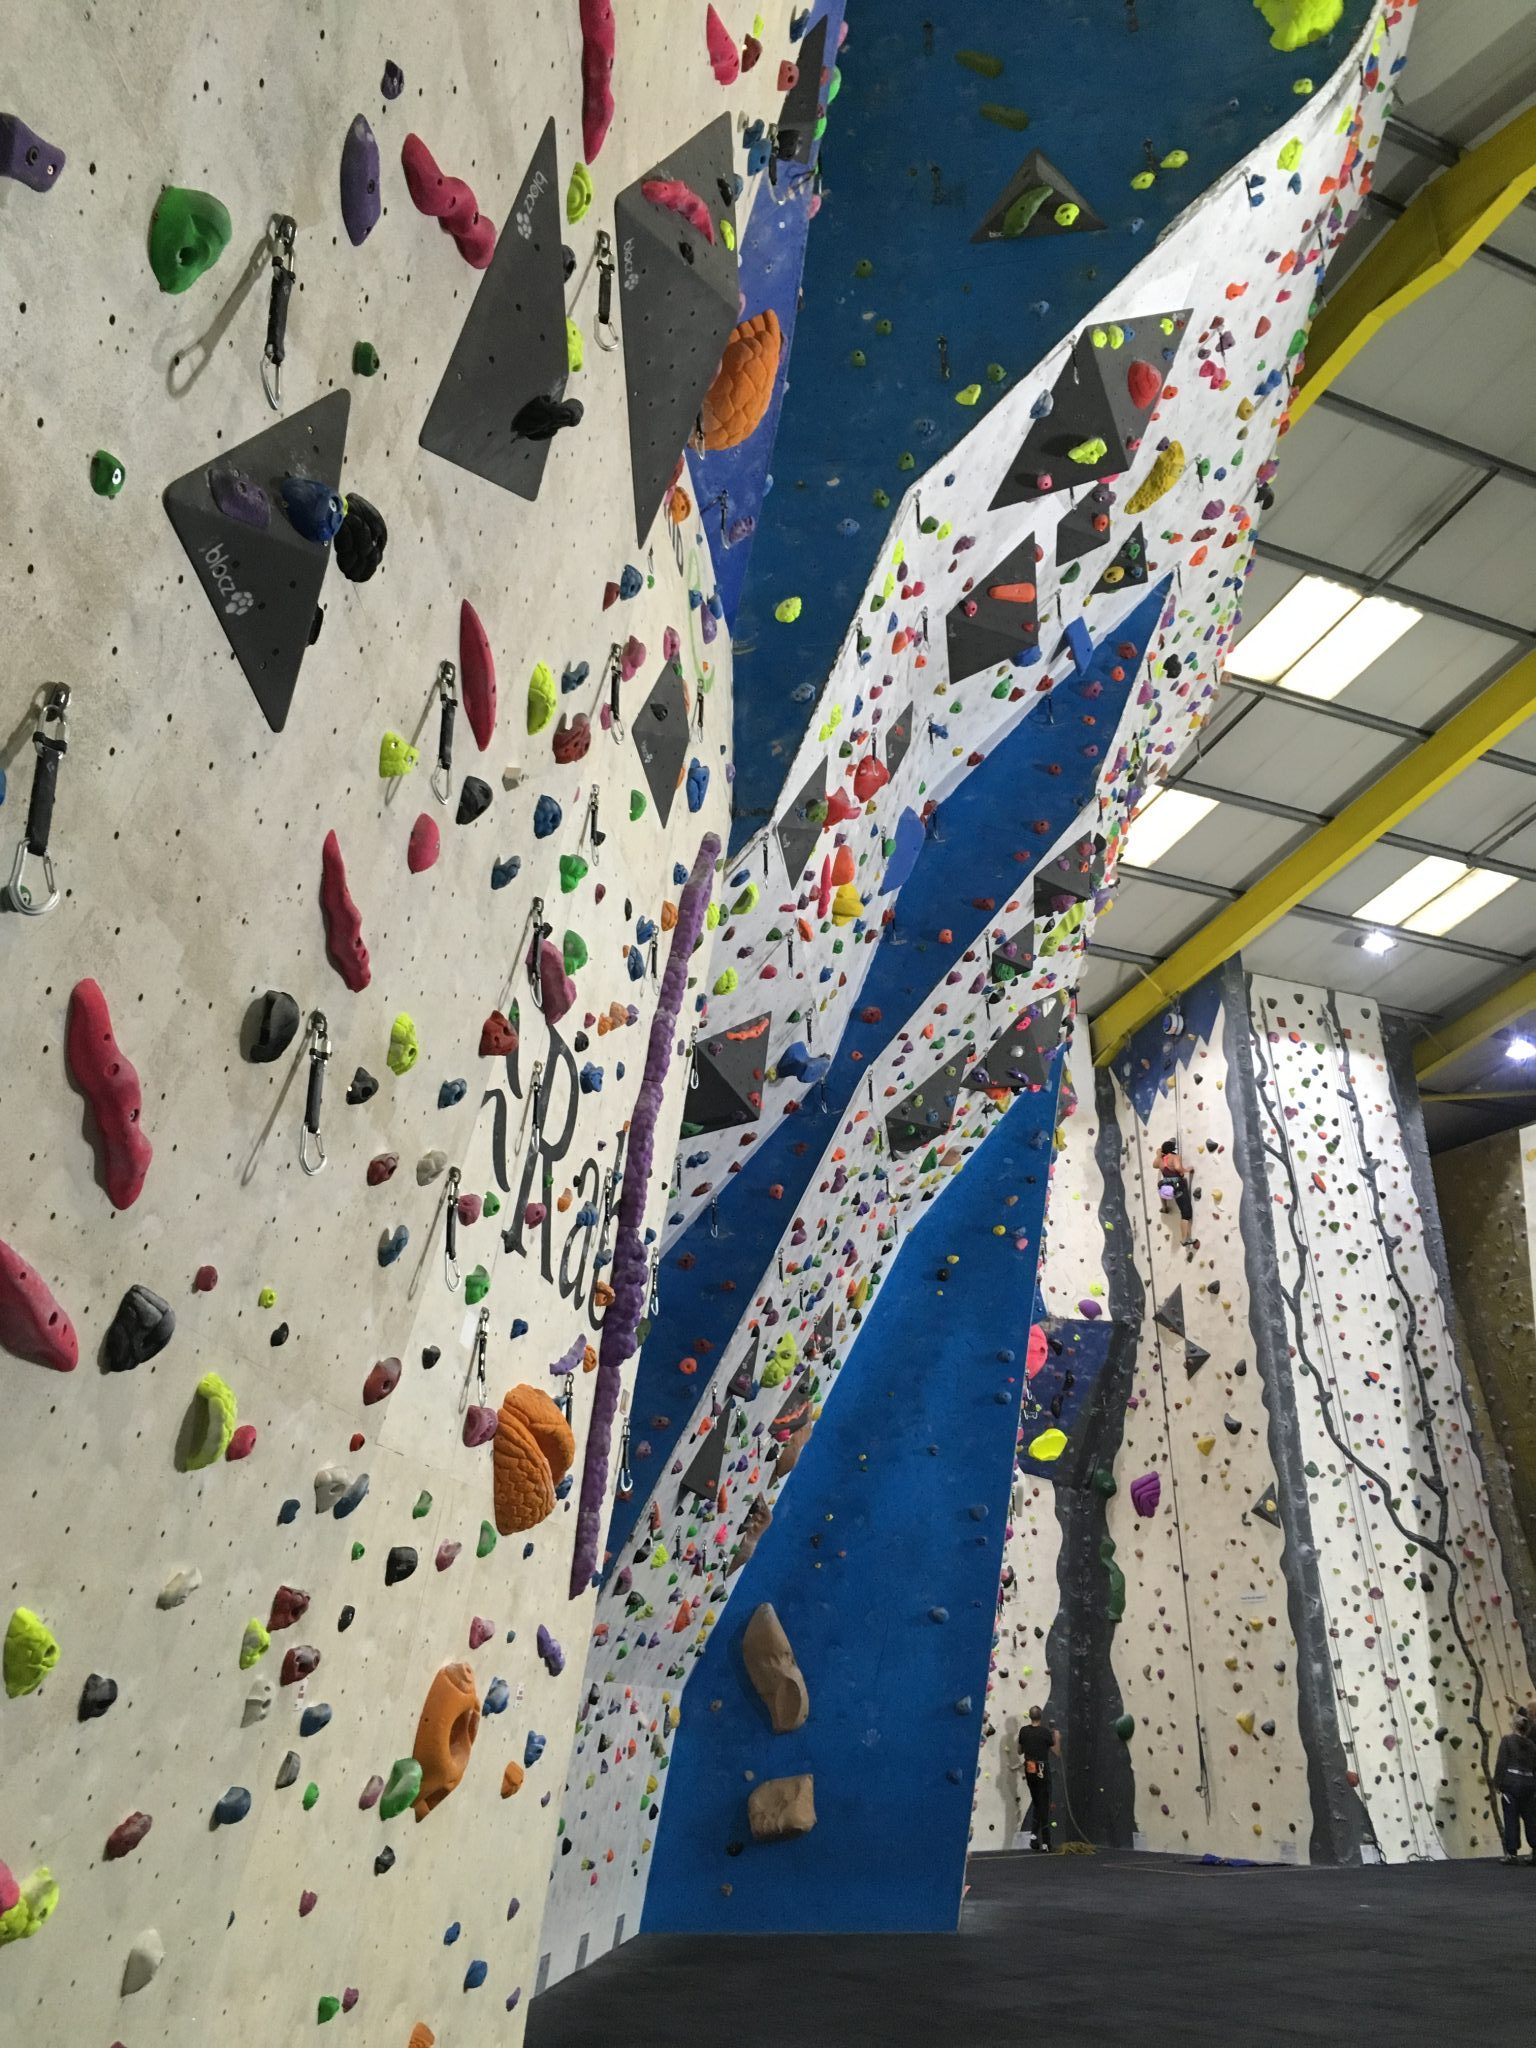 Some climbers enjoying a climbing taster session in Leeds